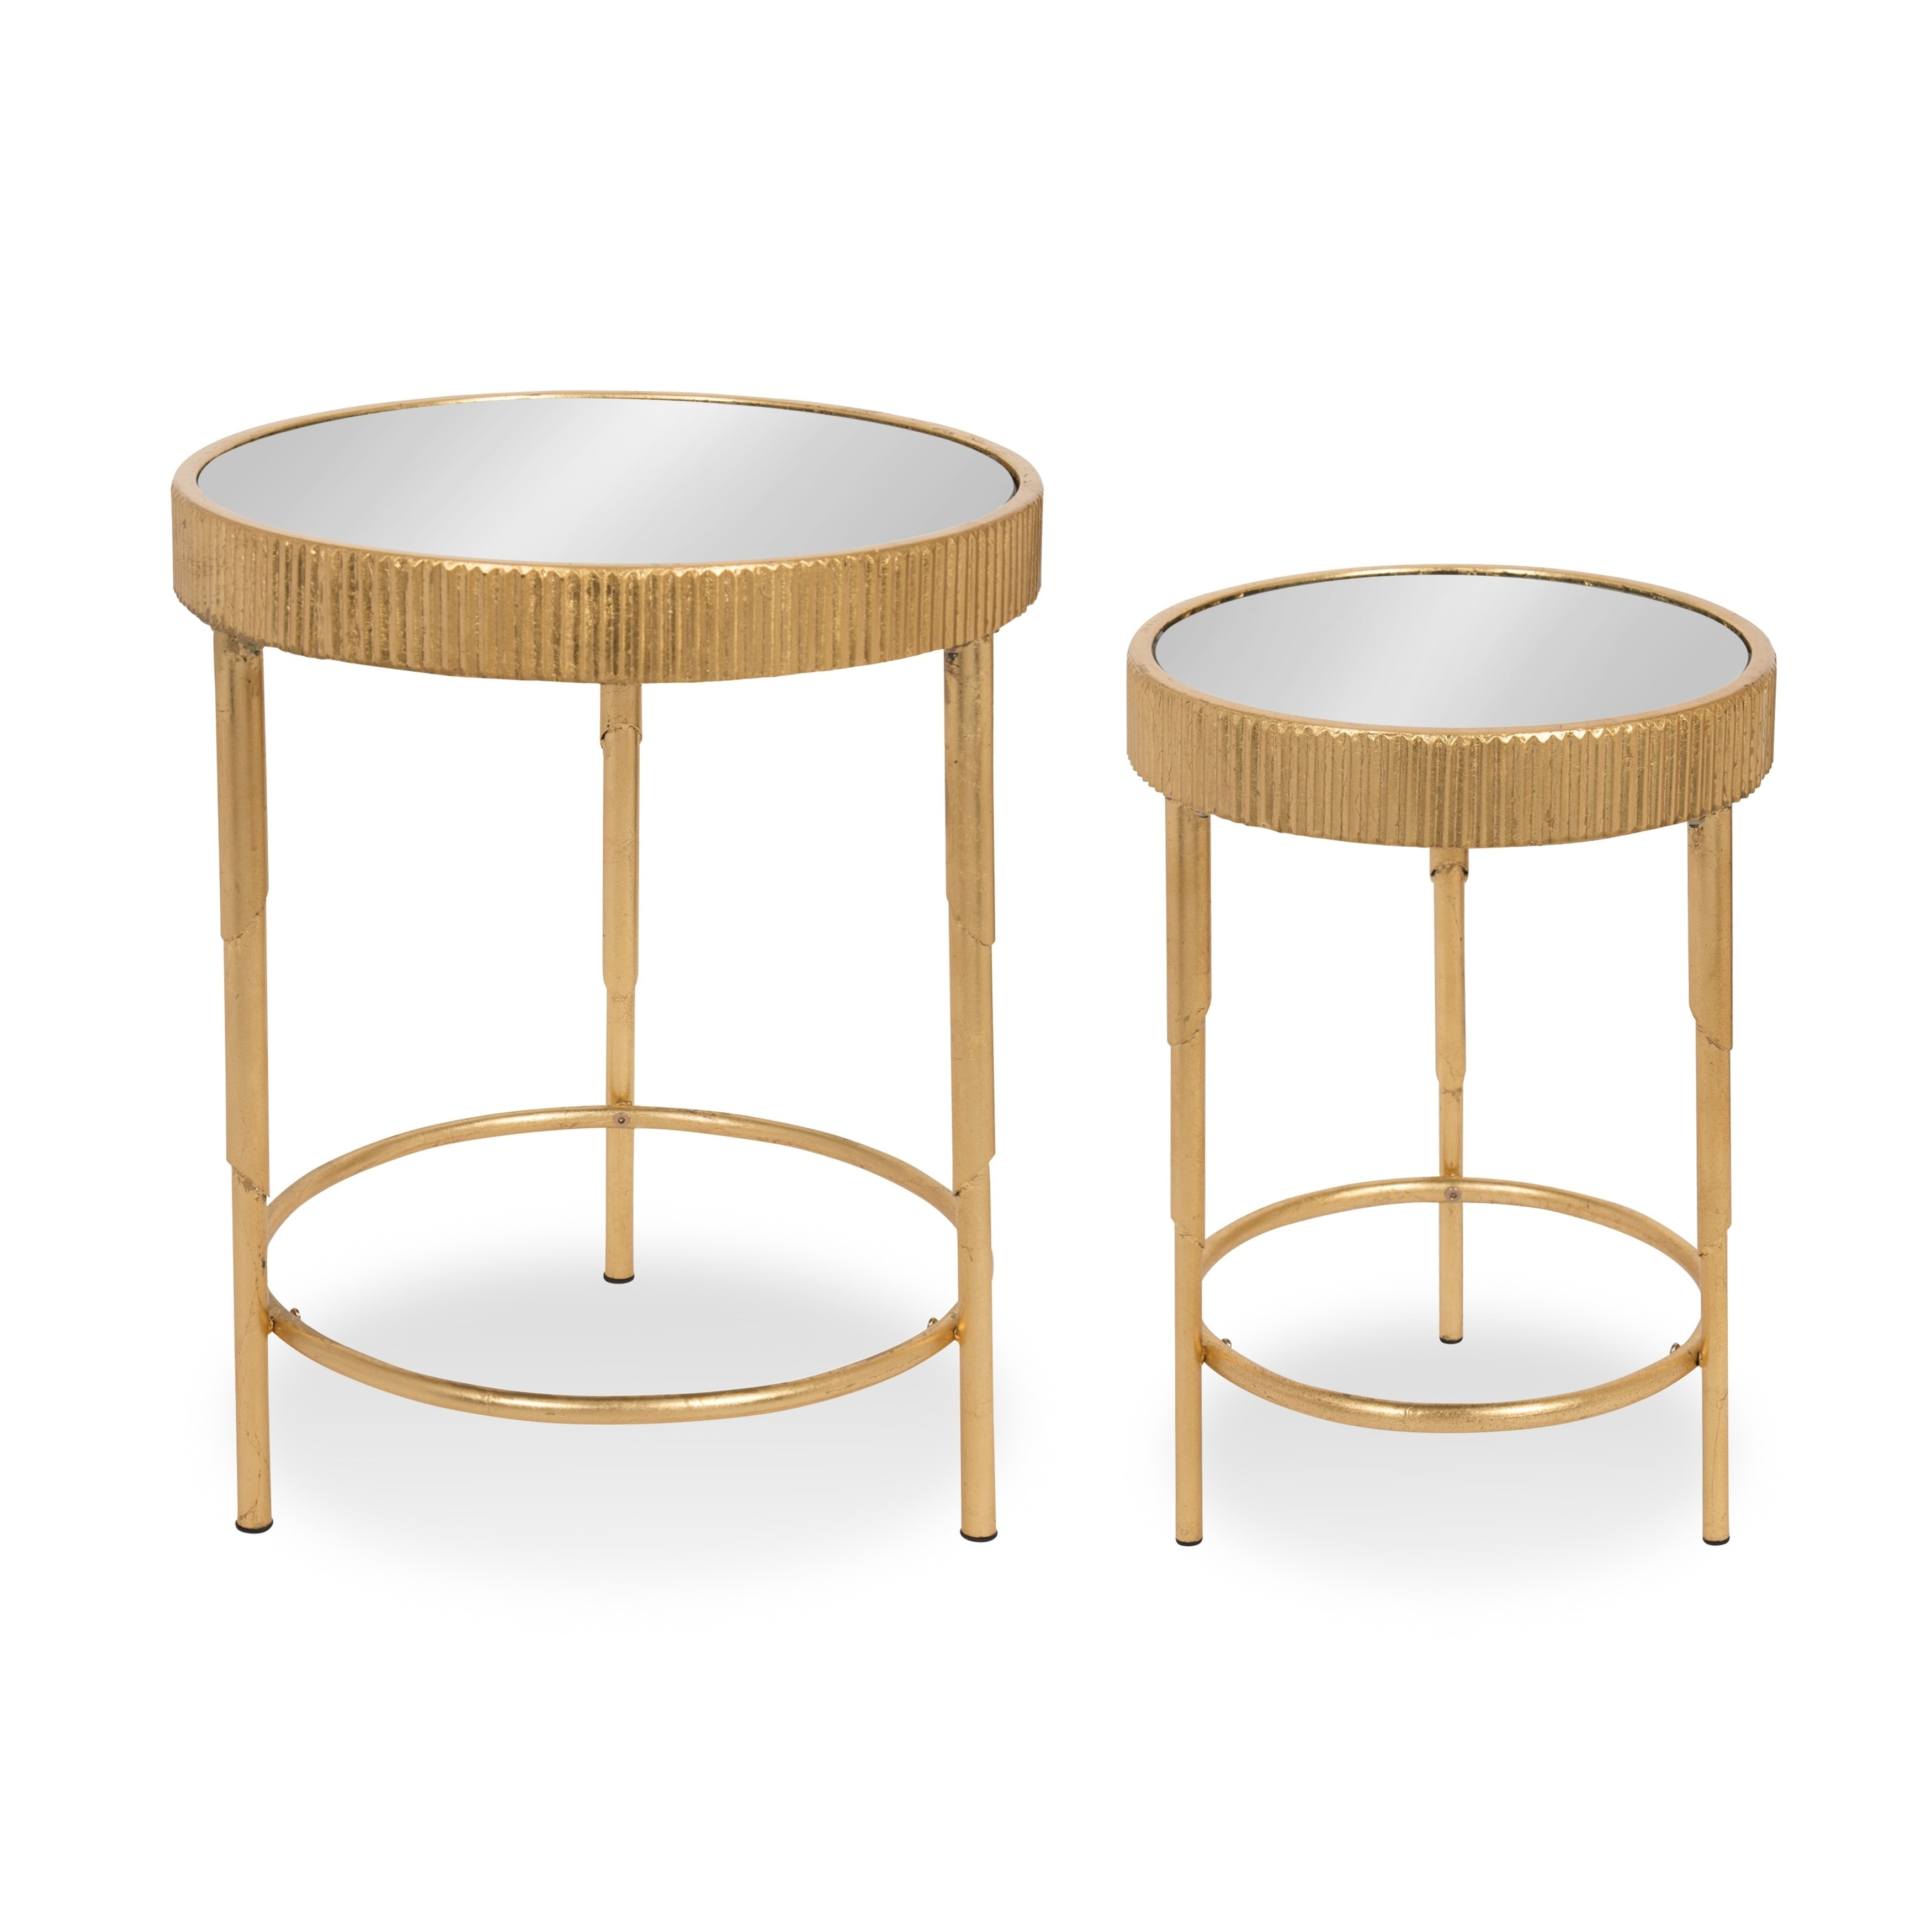 rosario round piece side accent tables gold leaf with mirror top matching mirrors free shipping today wood end storage kirklands lamps pedestal dining room furniture oak table